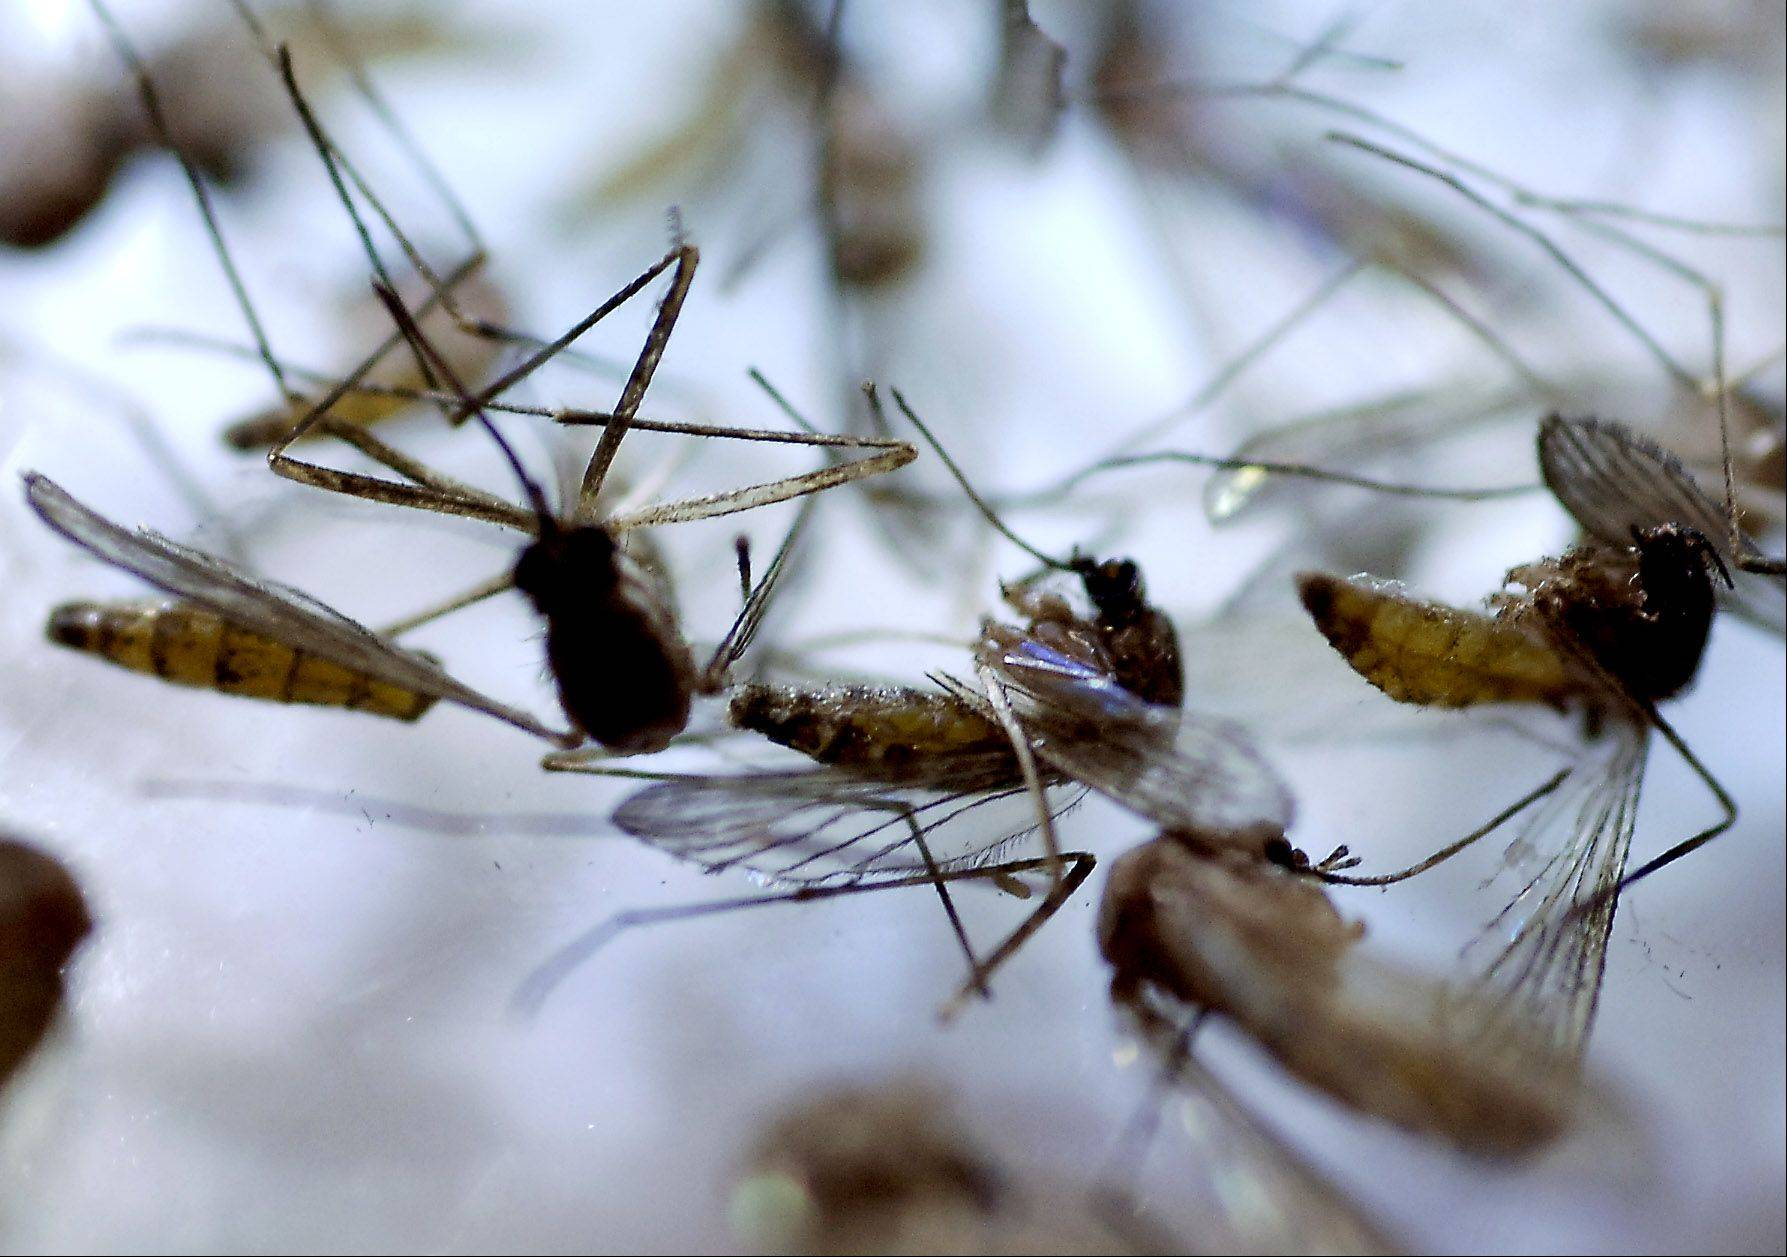 A task force is working to develop new strategies to control the mosquito population in DuPage County. One suggestion could be to have townships oversee the effort.